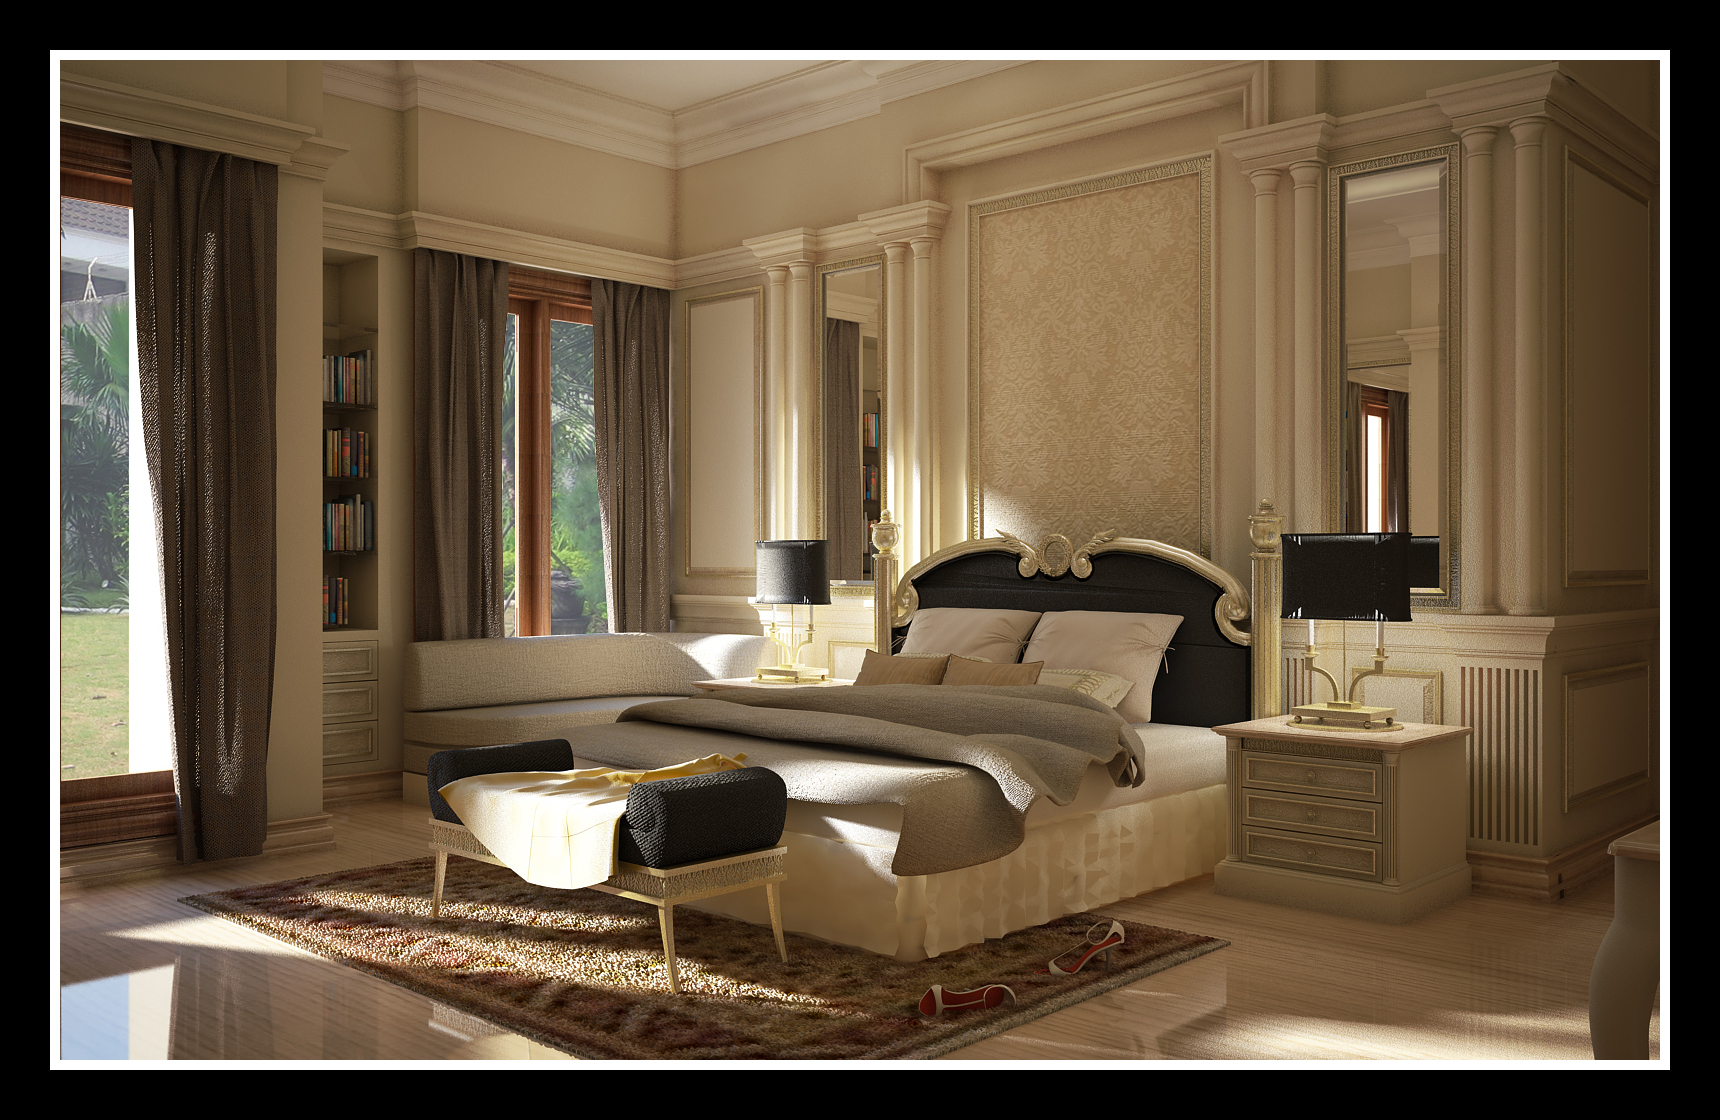 Interior design 3d home designer for Interior decoration bedroom photos